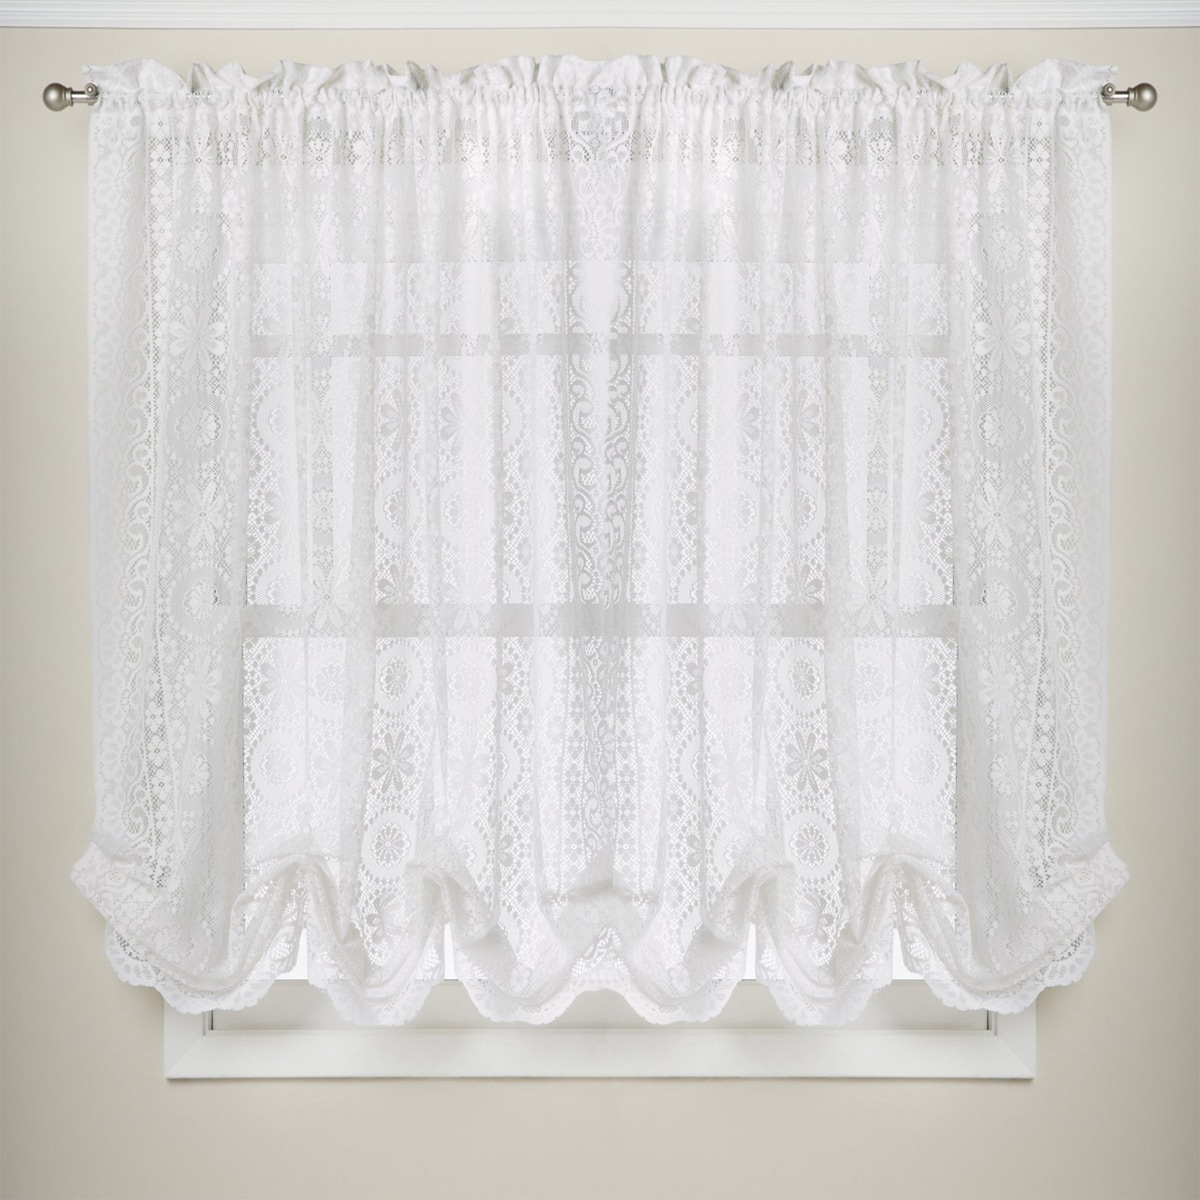 Shop White Lace Luxurious Old World-style Kitchen Curtains Tiers